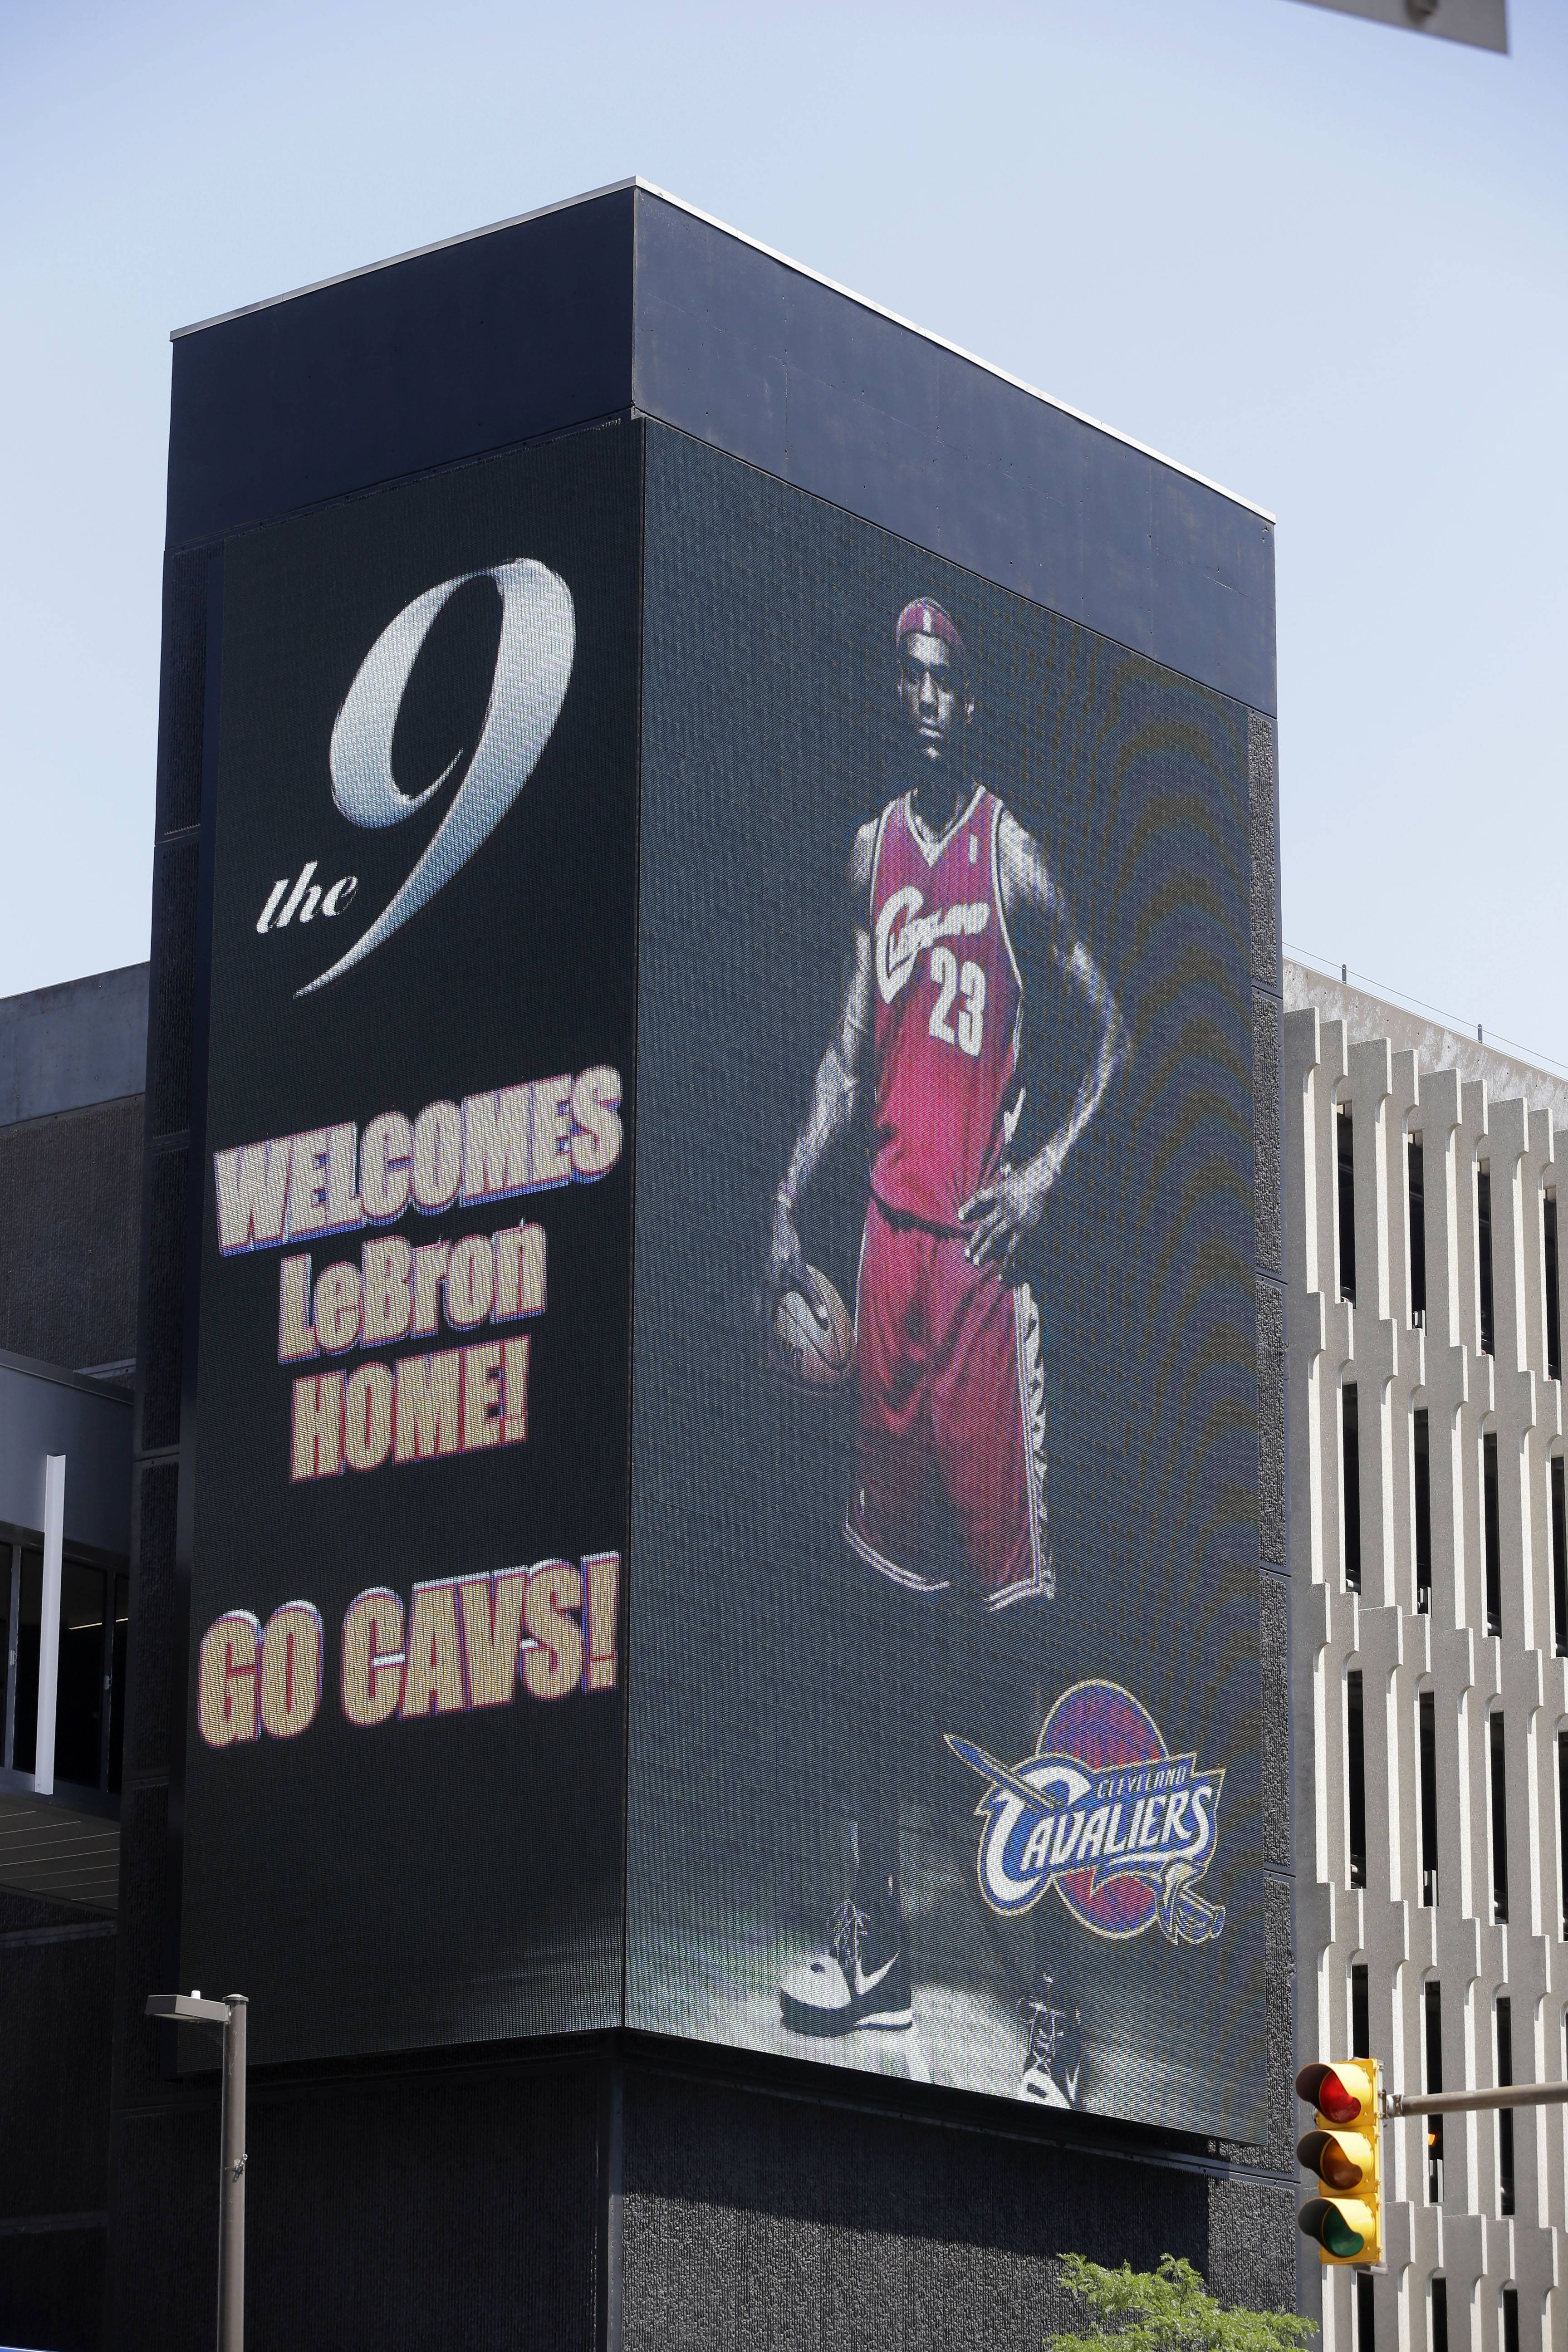 A large electronic billboard in Cleveland welcomes back NBA basketball star LeBron James Friday, after he announced he would return to the Cleveland Cavaliers after four years with the Miami Heat.